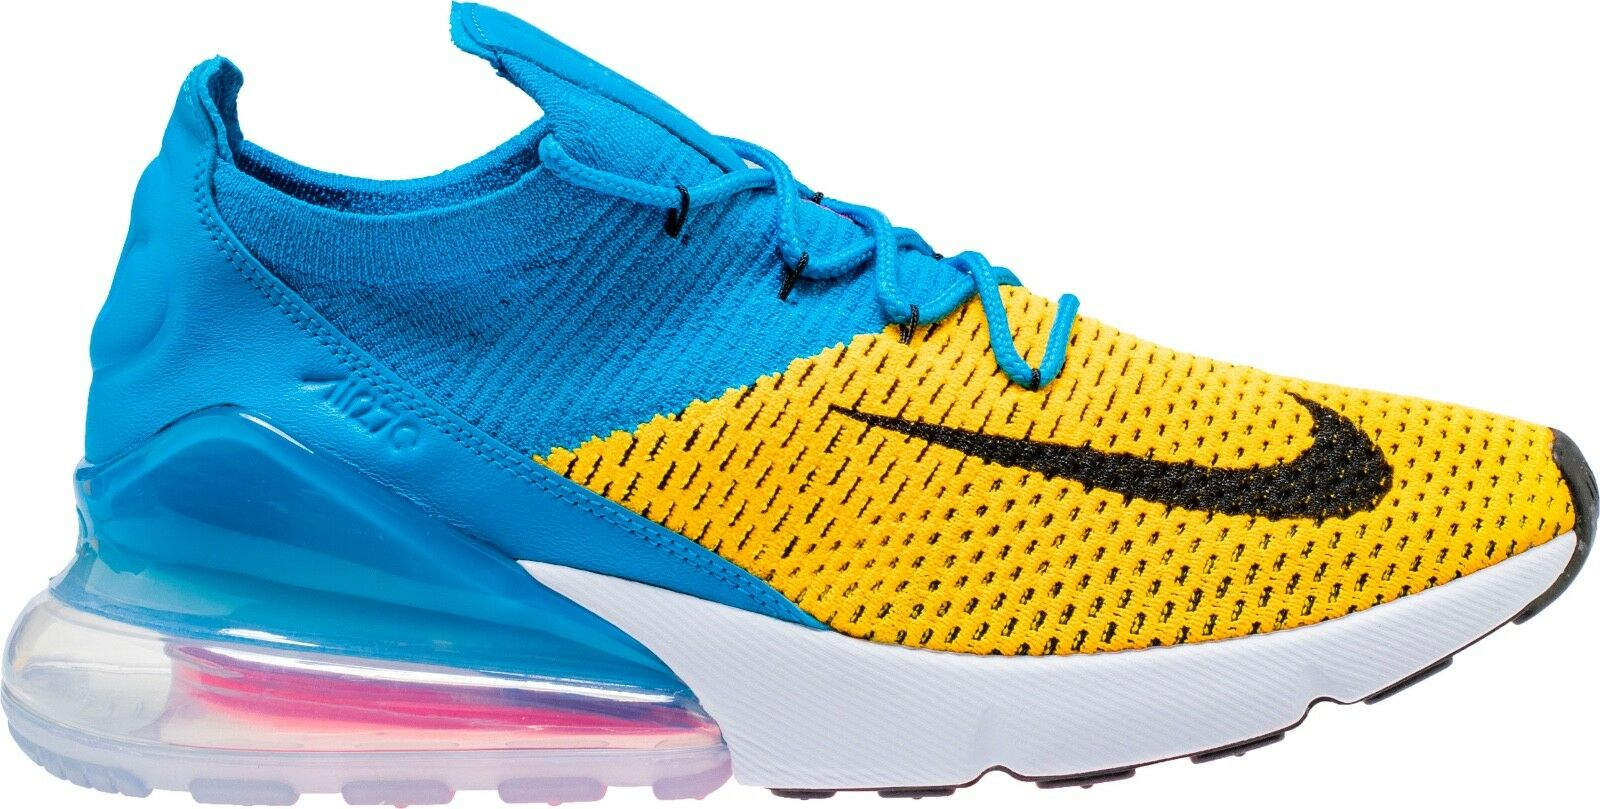 Men's Brand New Air Max 270 Flyknit  bluee Orbit  Fashion Sneakers [AO1023 800]